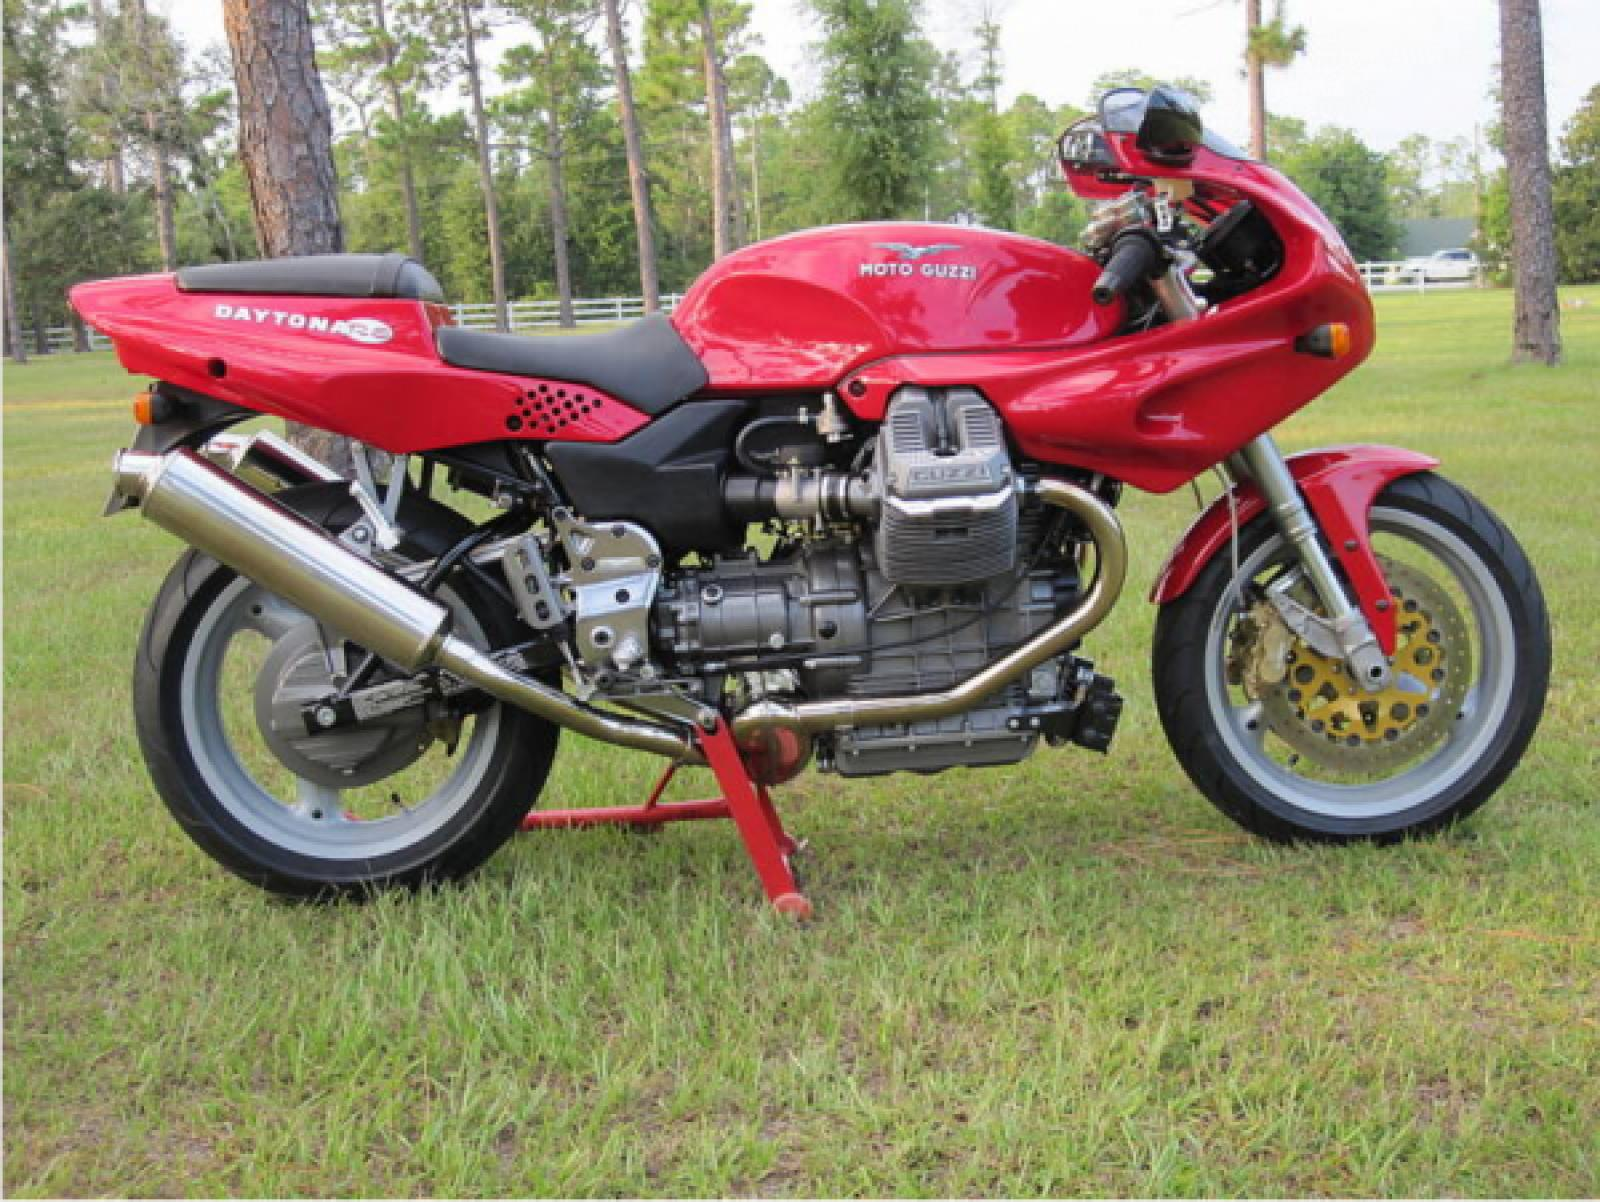 Moto Guzzi 1000 Daytona Injection images #108540